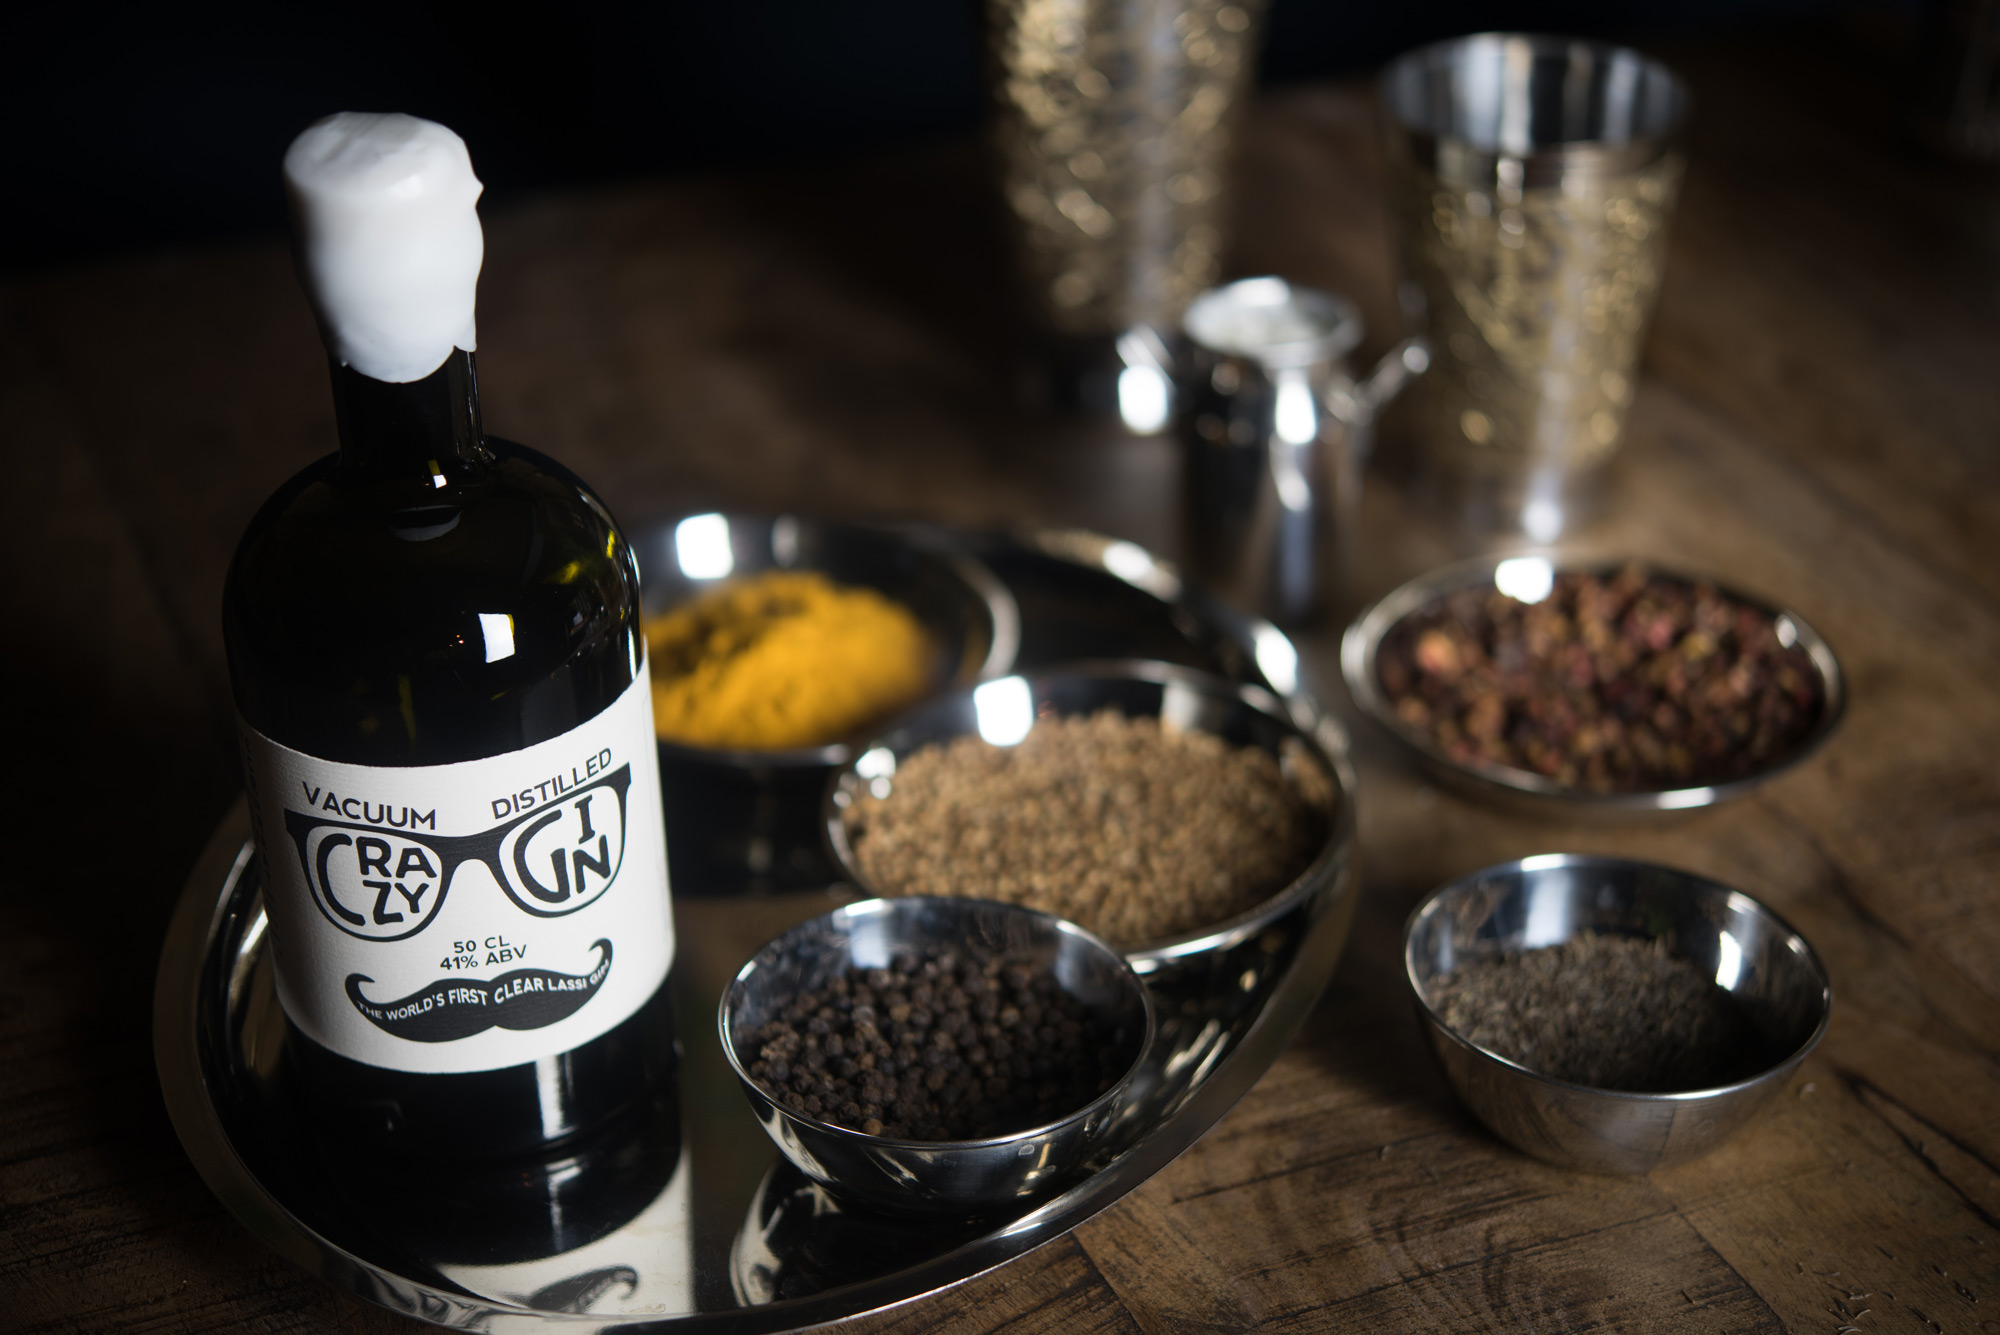 Breaking The Mould - An Interview with Crazy Gin Founder Bruce Nagra 6